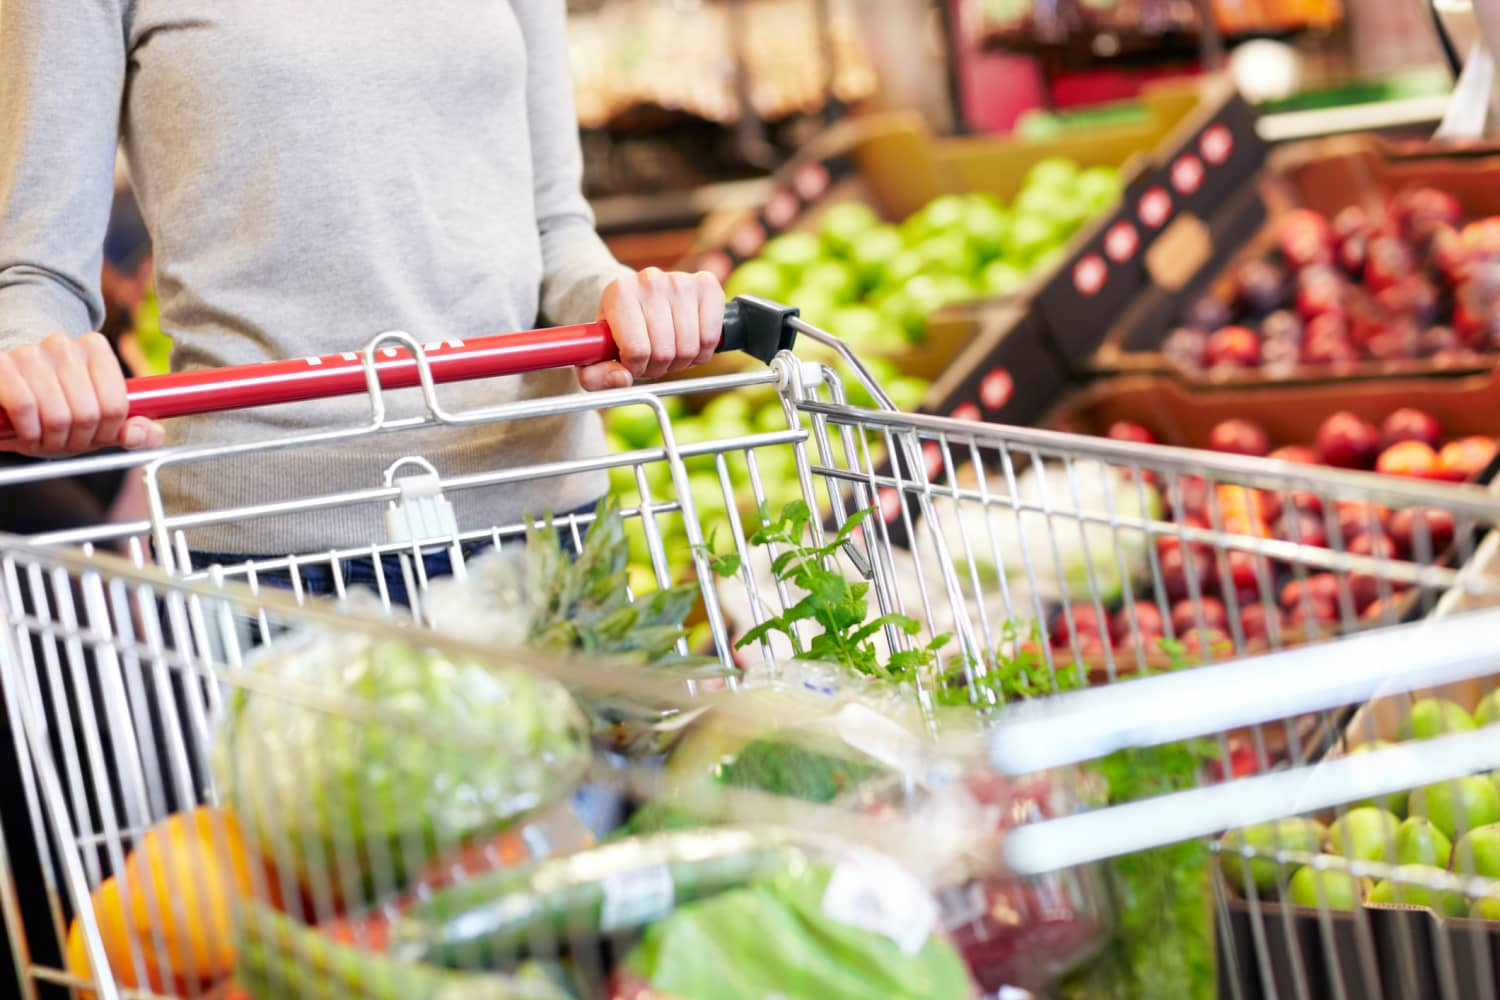 How Being Home These Last Few Months Changed the Way These Professional Chefs Grocery Shop